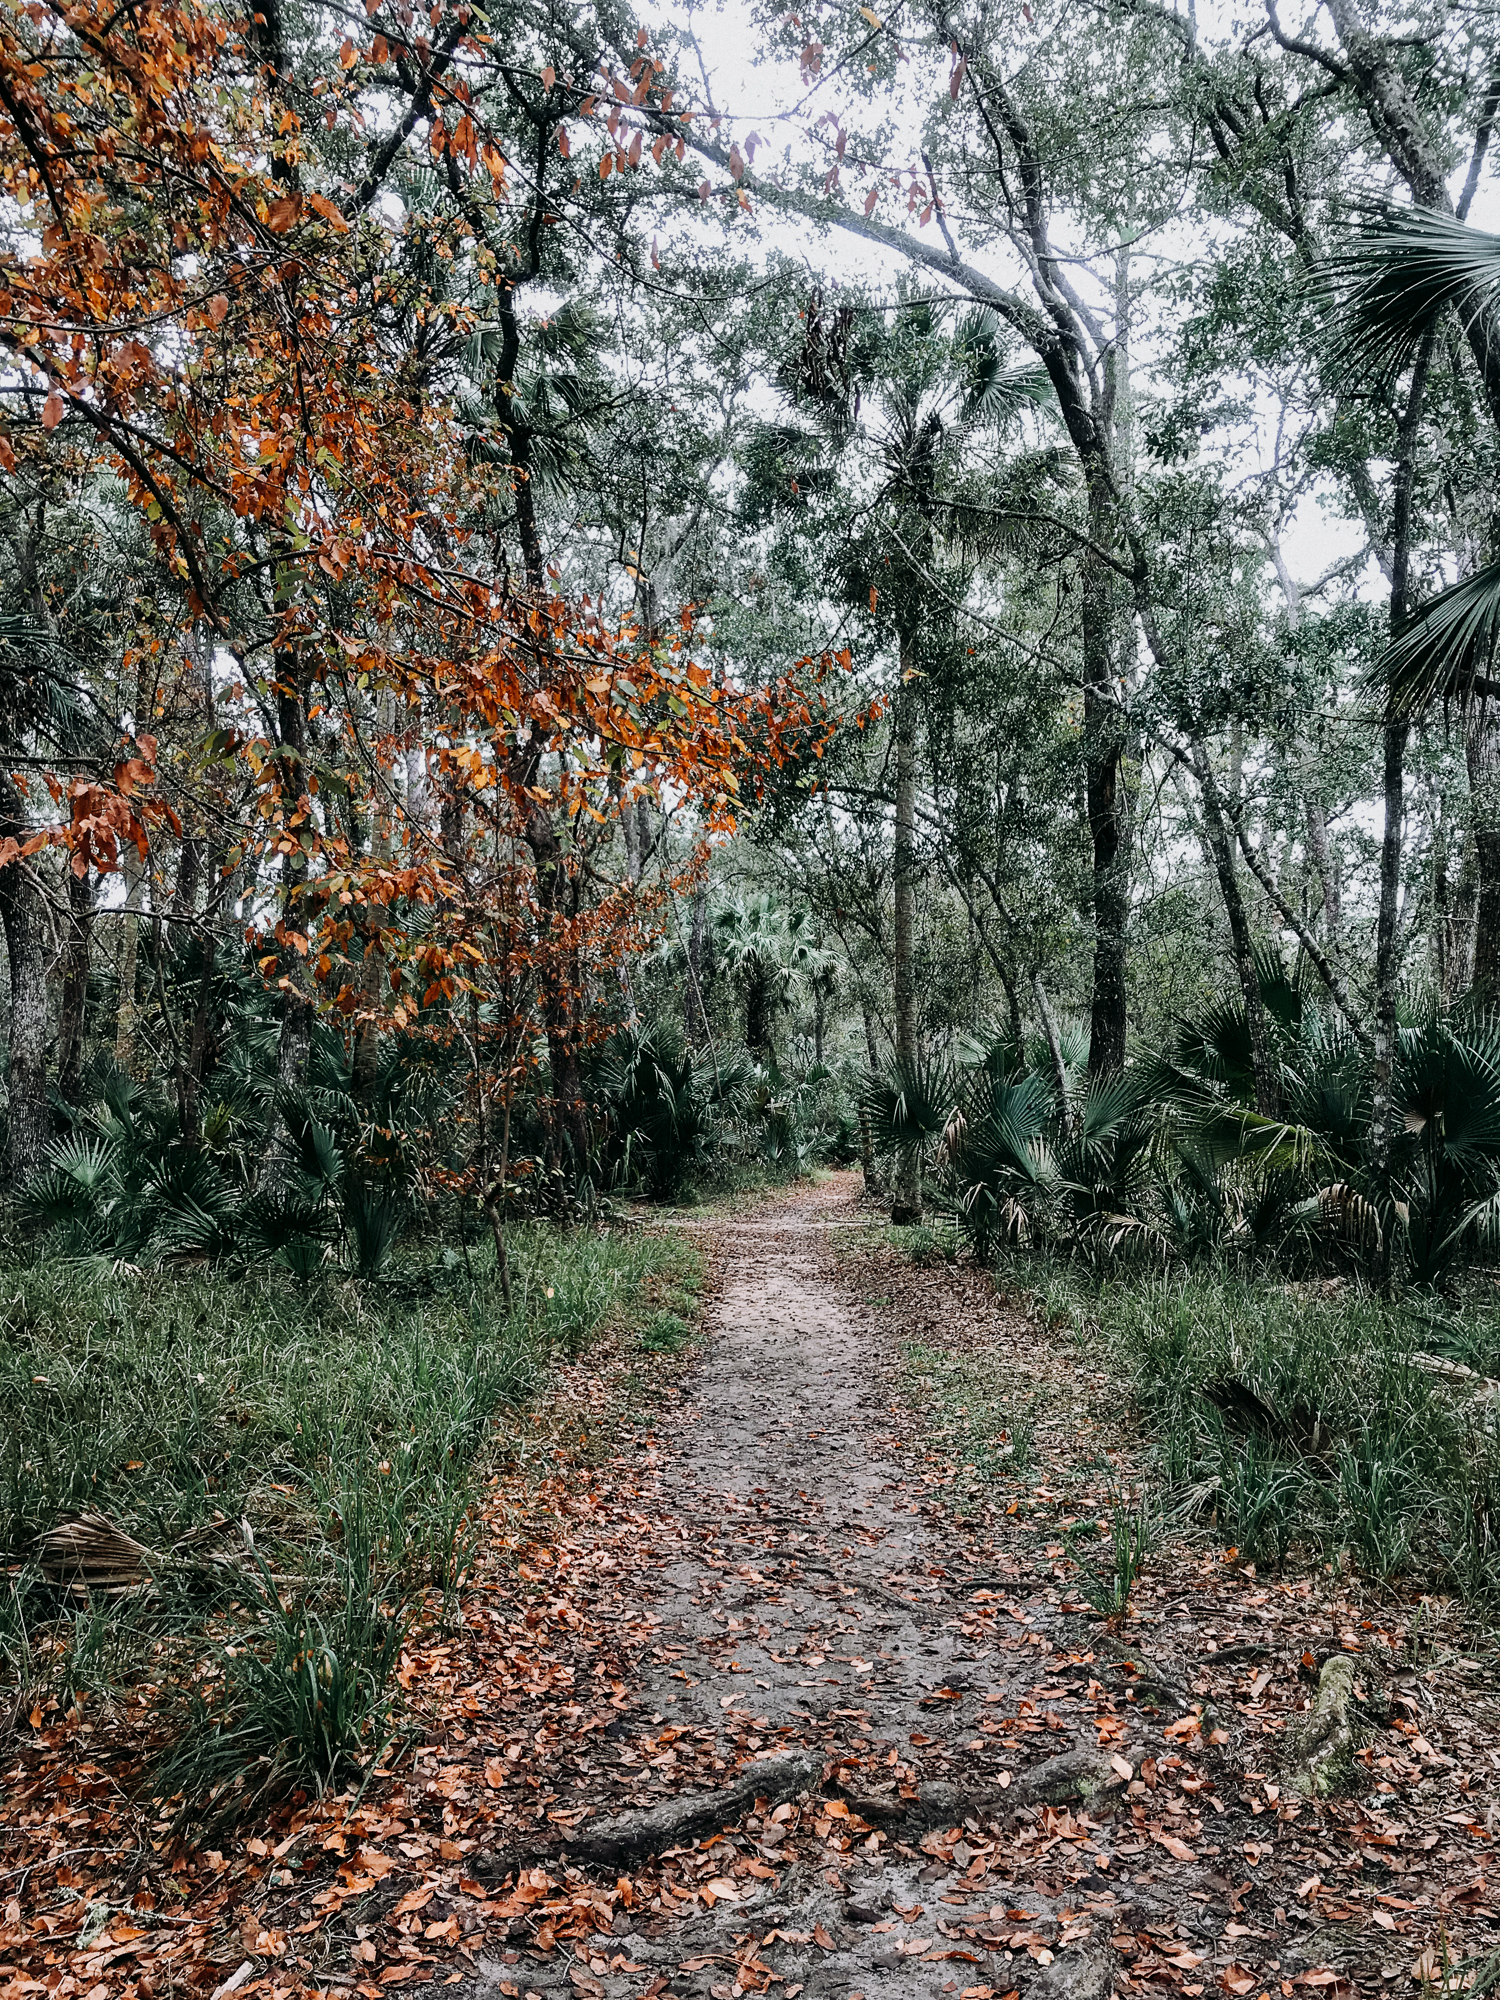 From-Coast-to-Coast-Camping-Juniper-Springs-ocala-national-forest-17-.jpg